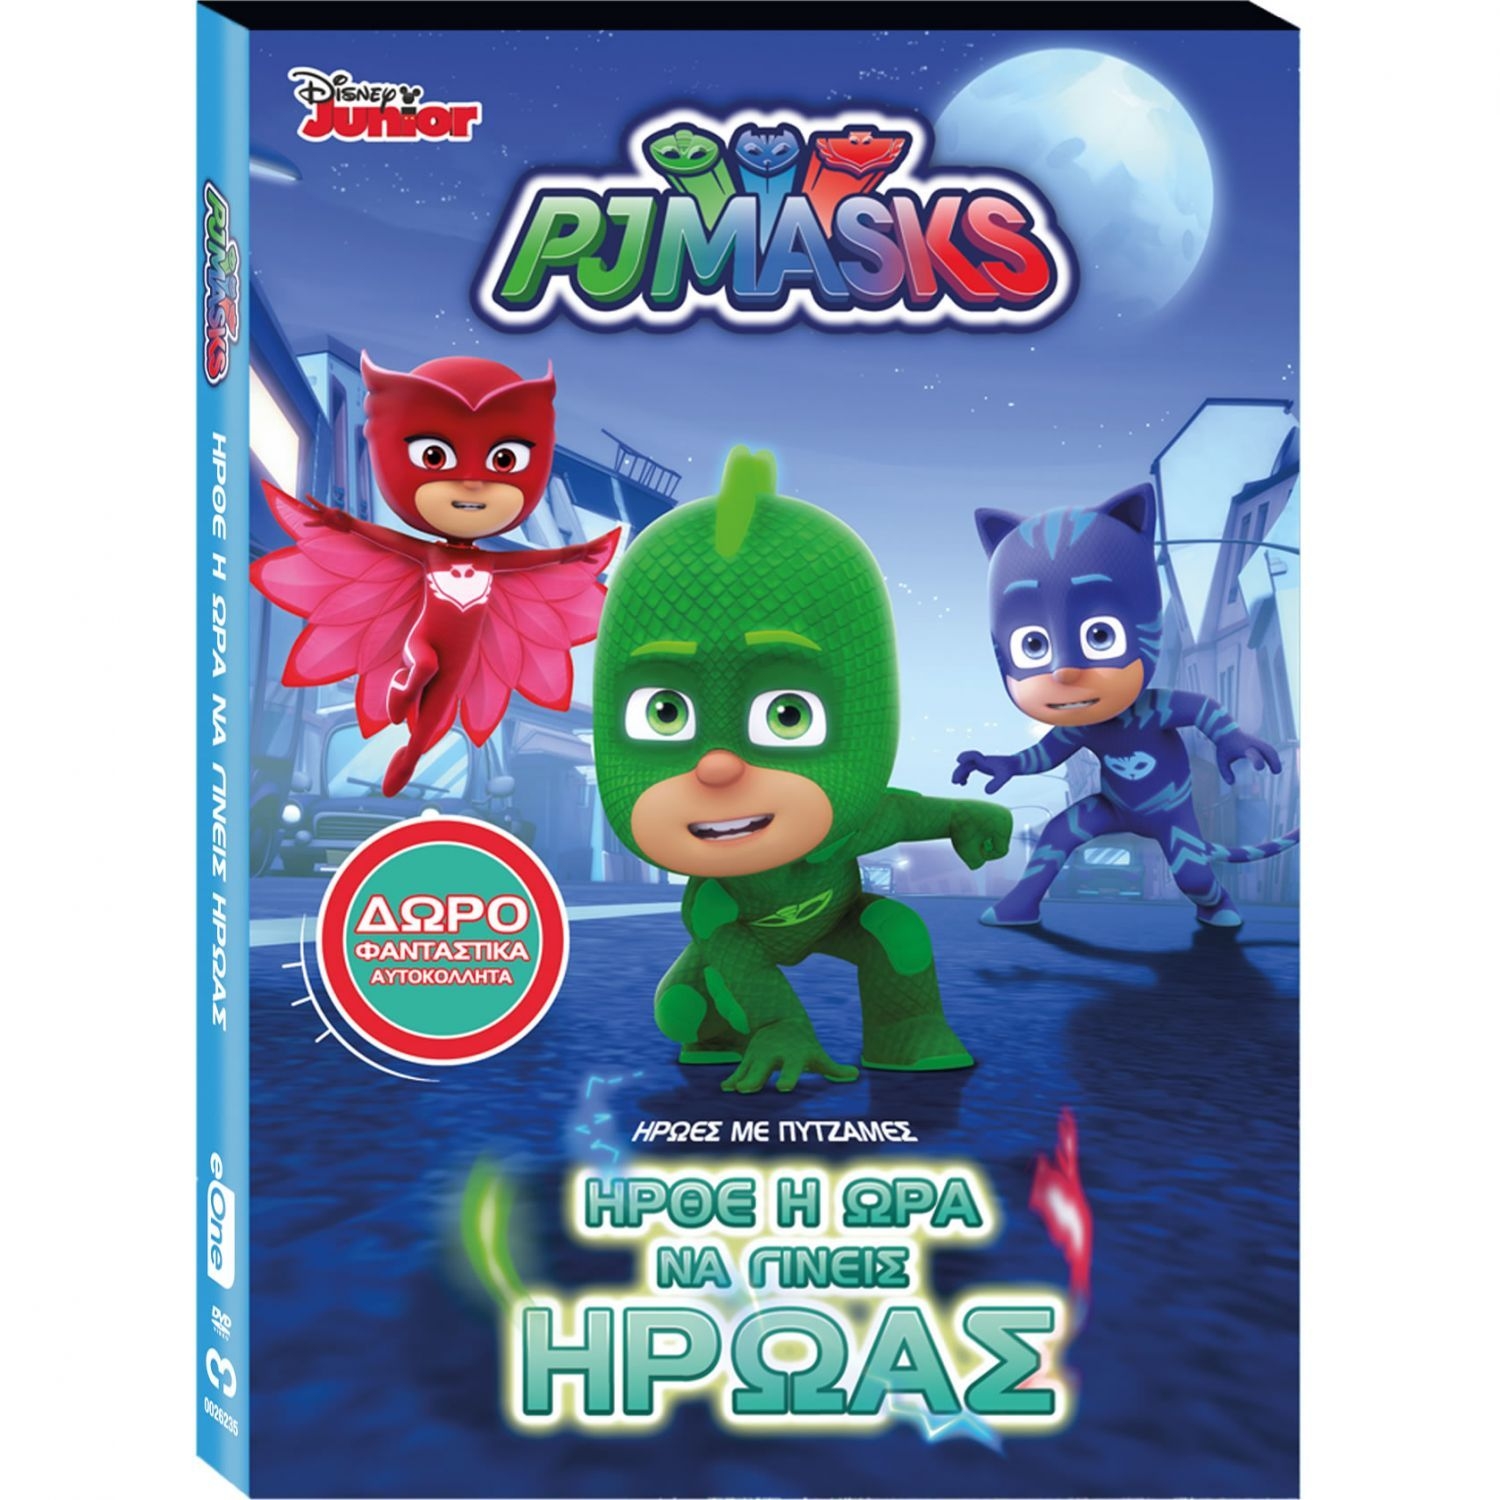 PJ MASKS  TIME TO BE A HERO - ΗΡΩΕΣ ΜΕ ΠΥΤΖΑΜΕΣ  ΗΡΘΕ Η ΩΡΑ ΝΑ ... 8349ade59cb